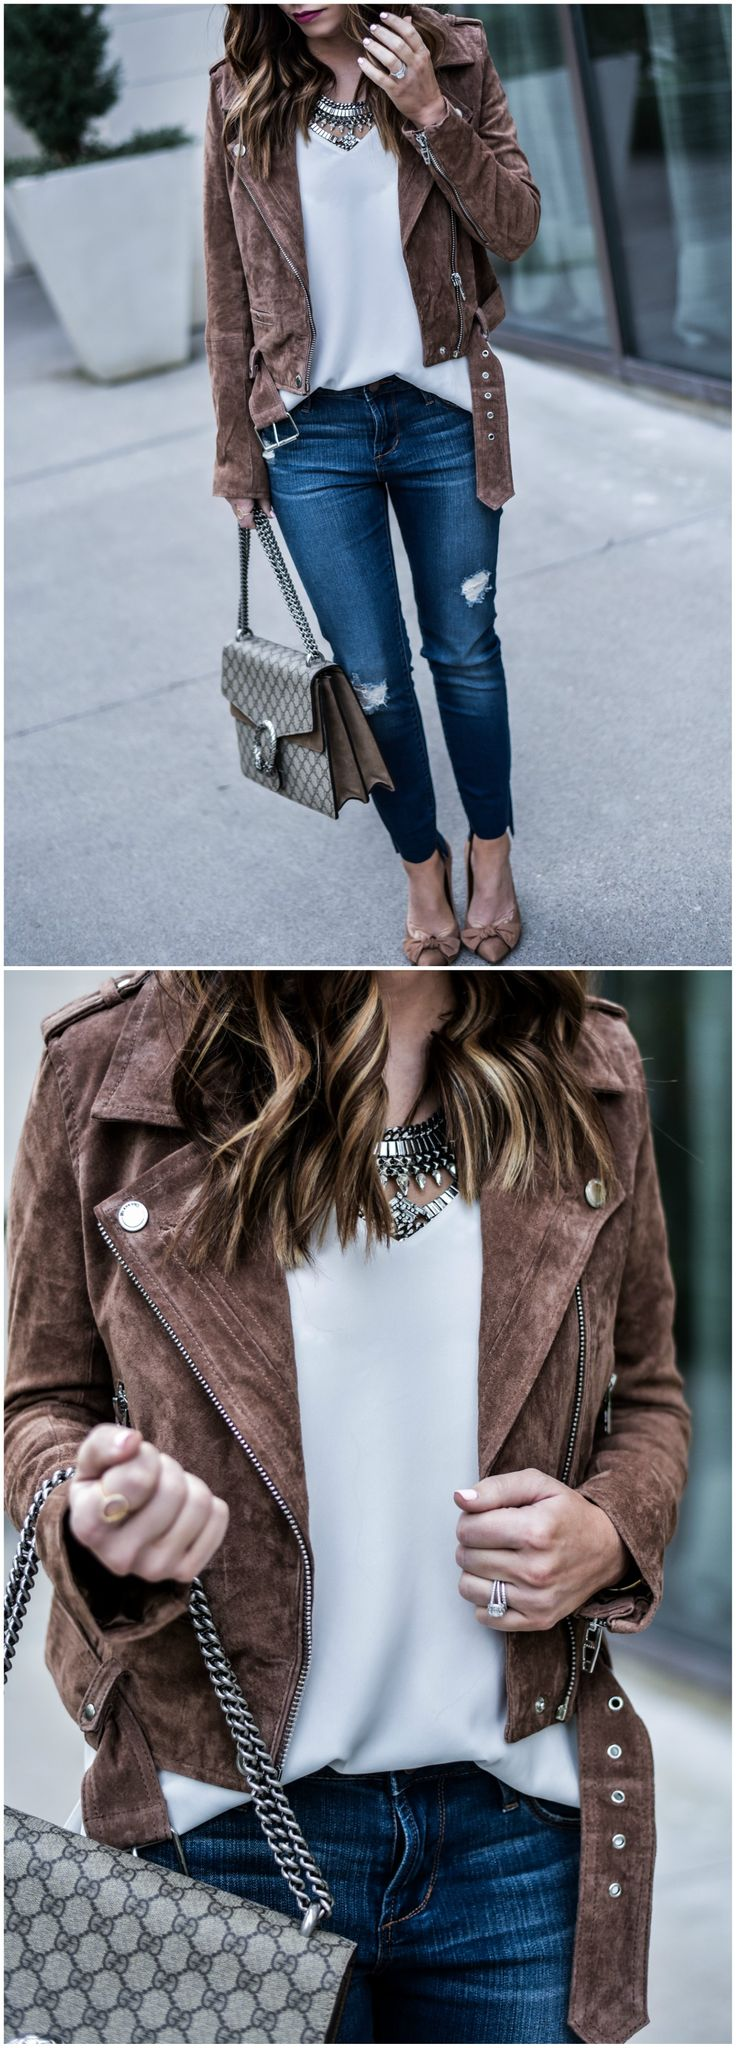 Tiffany Jais a Houston Style blogger is wearing a suede moto jacket by Blank NYC and Staggered hem jeans from Nordstrom, along with her favorite Gucci Dionysus bag |